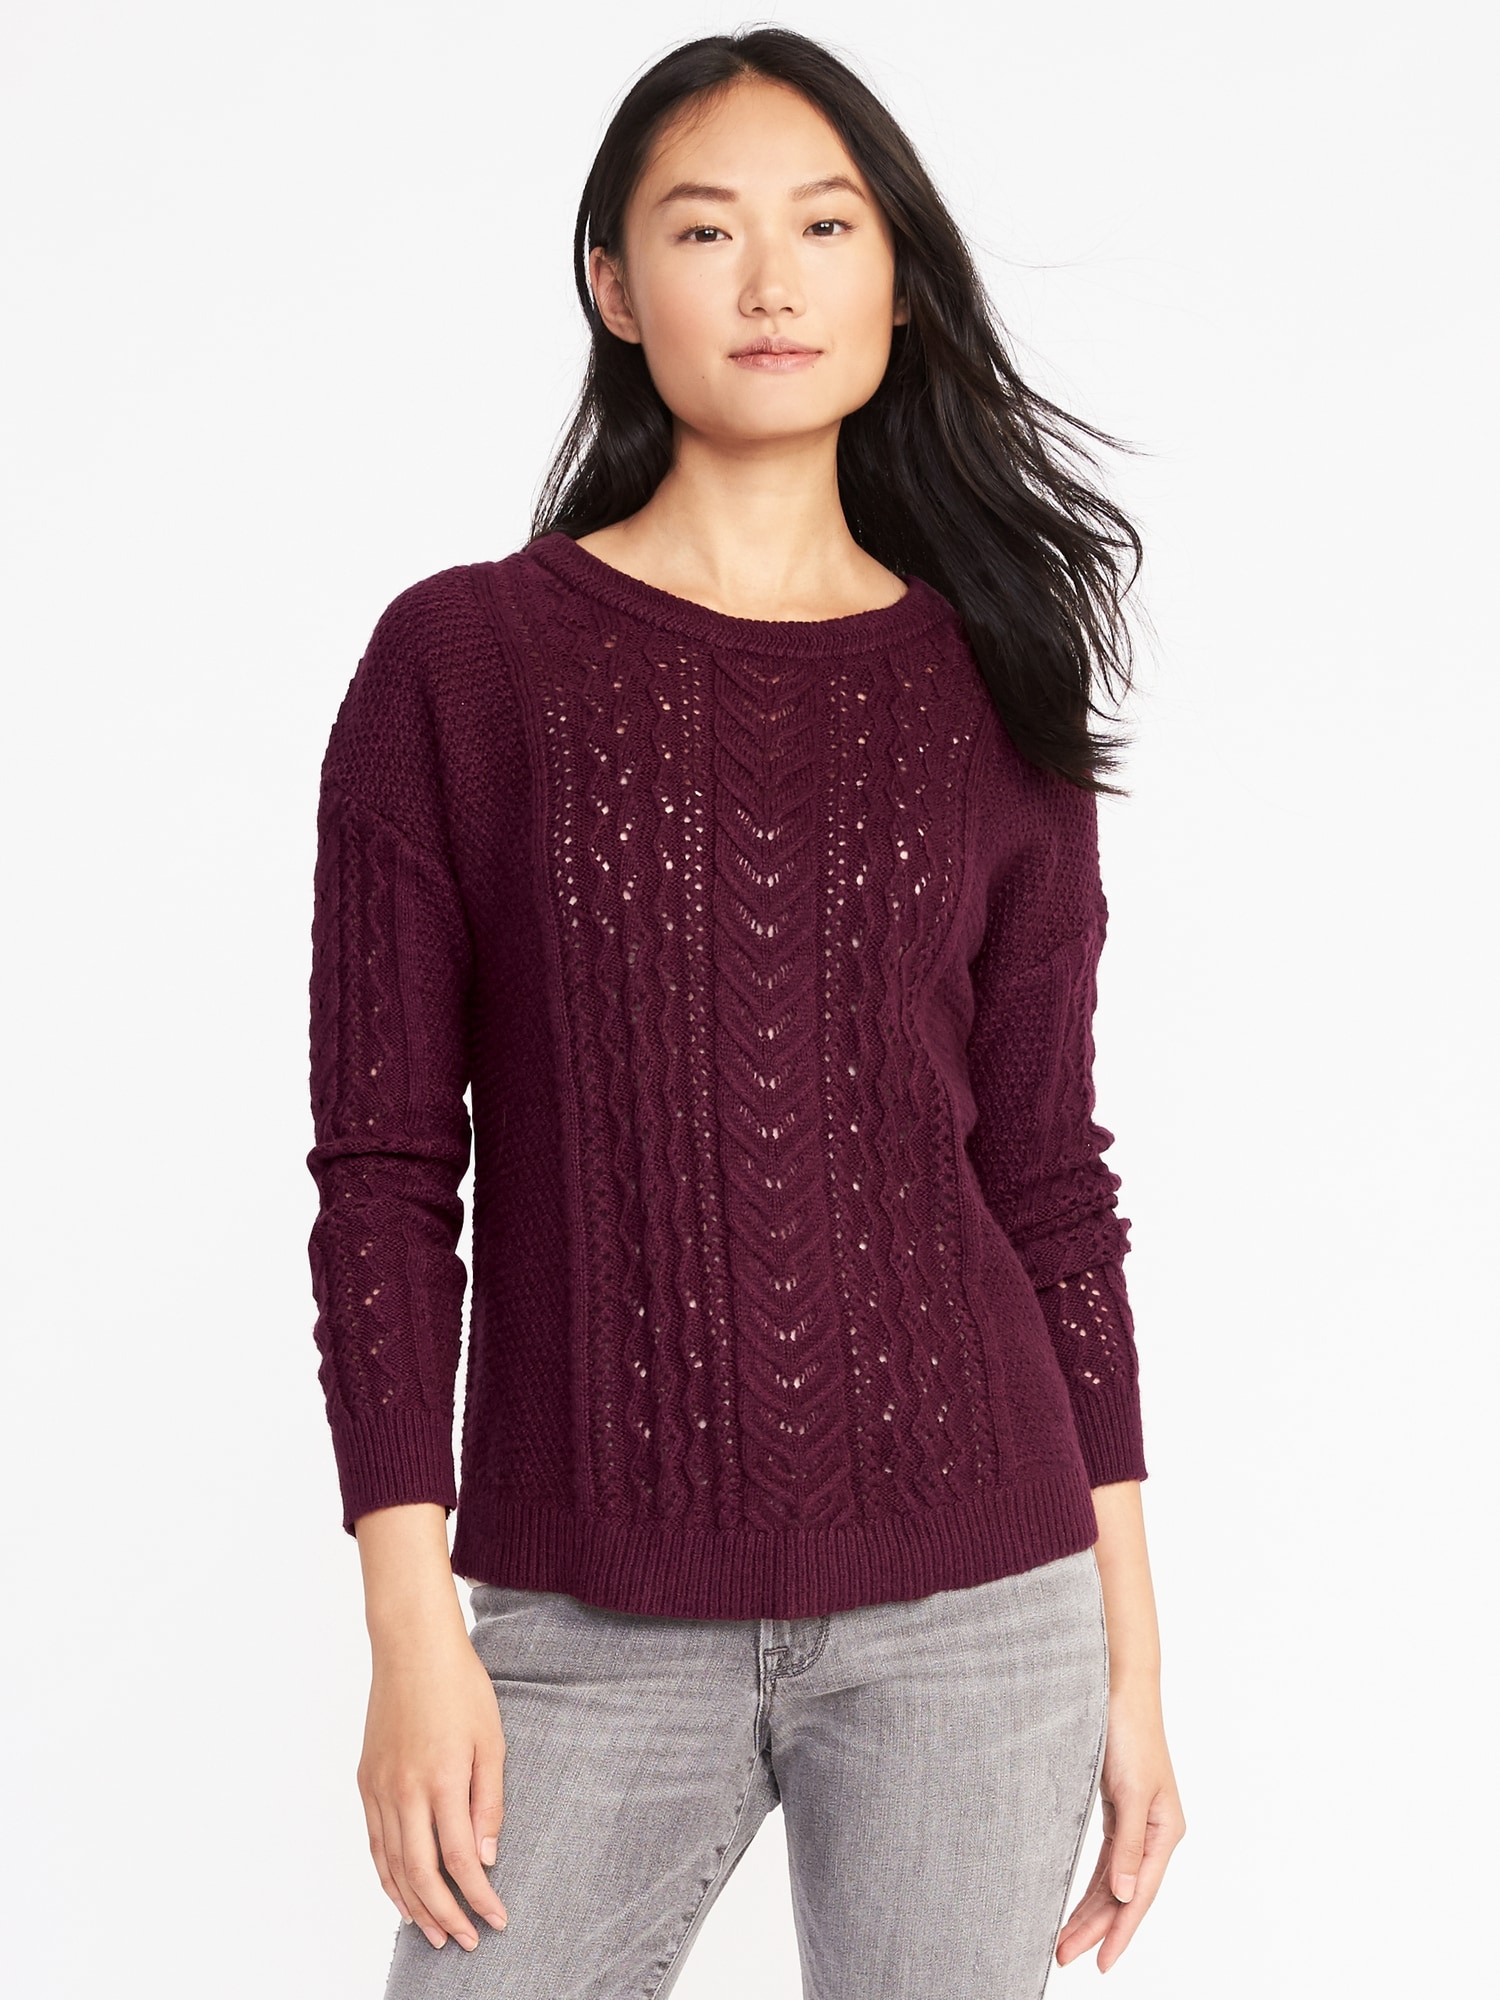 Relaxed Cable-Knit Sweater for Women | Old Navy